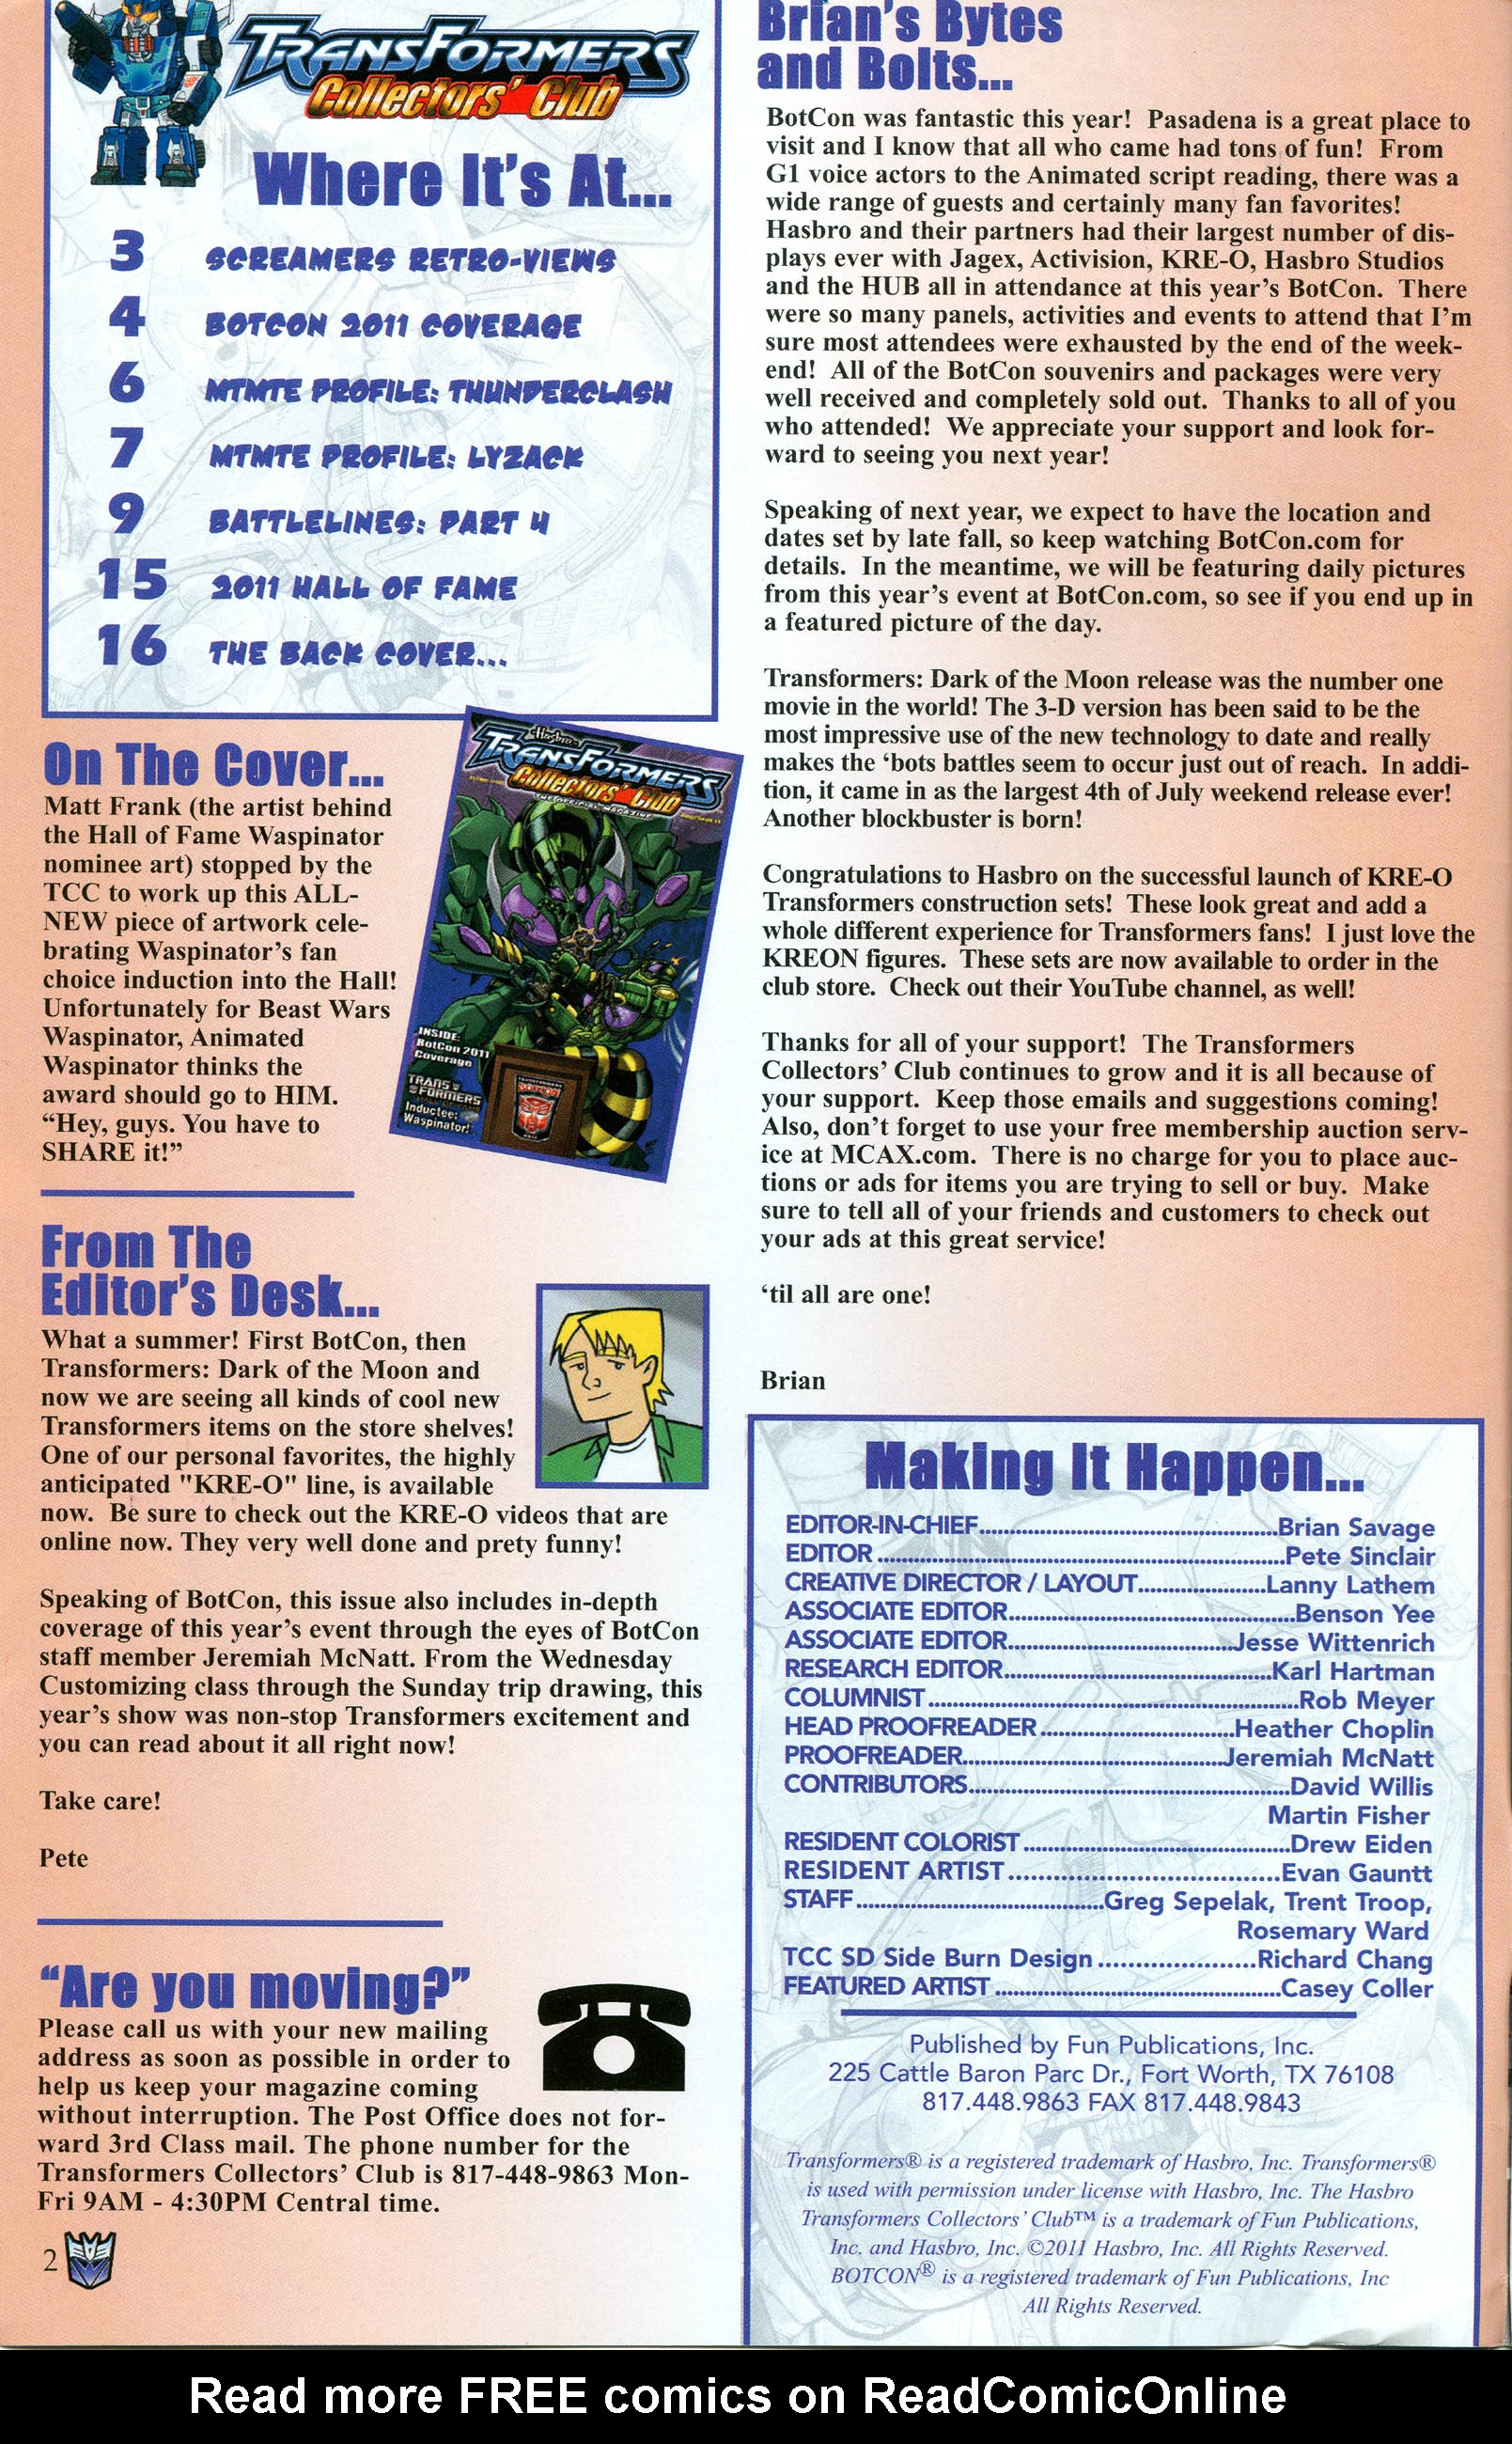 Read online Transformers: Collectors' Club comic -  Issue #40 - 2